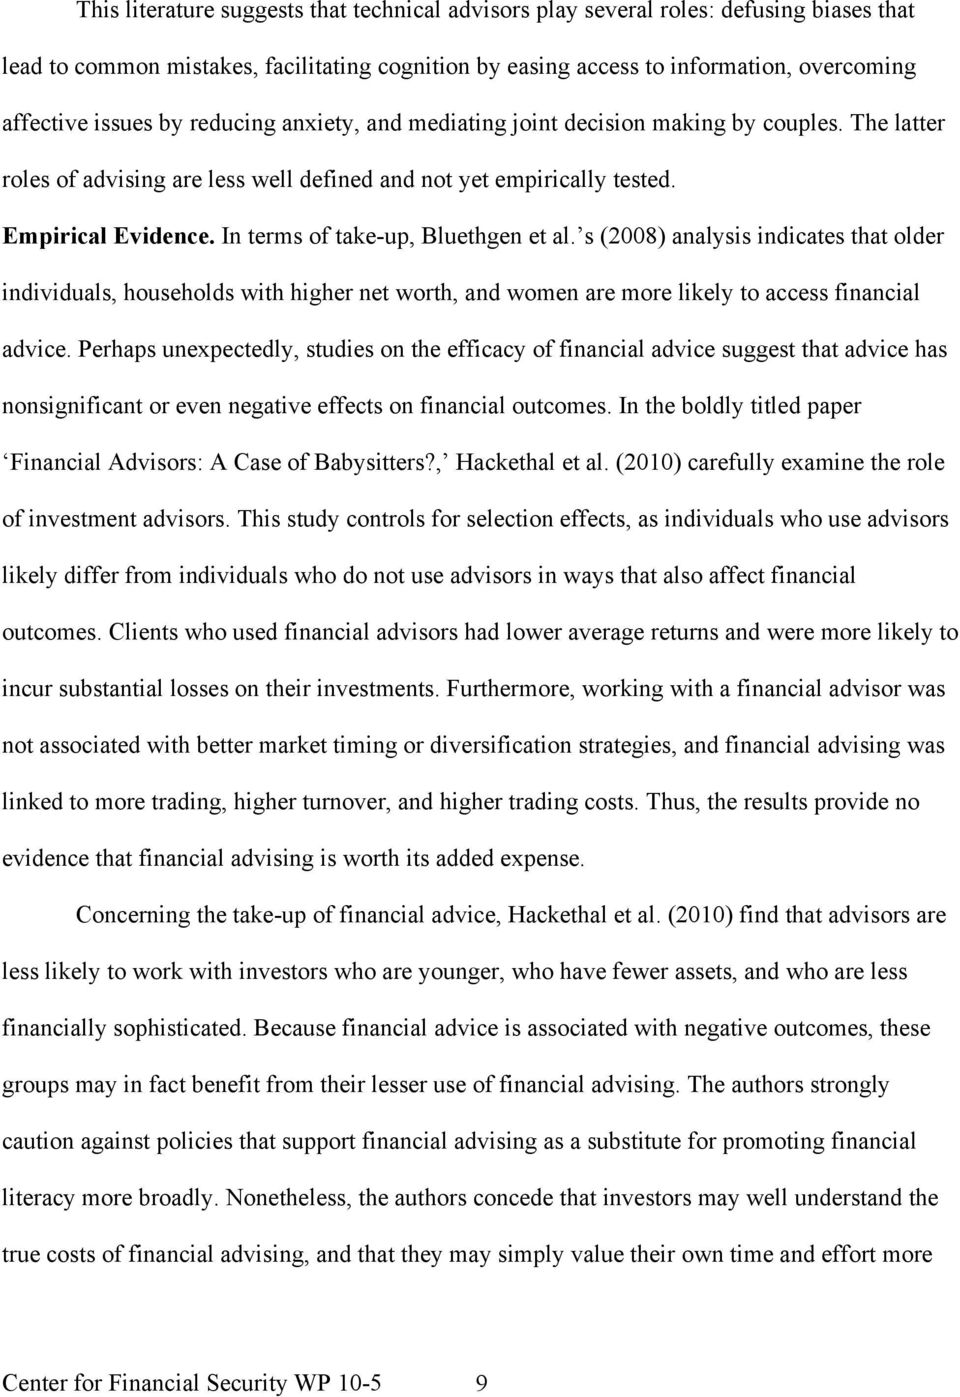 In terms of take-up, Bluethgen et al. s (2008) analysis indicates that older individuals, households with higher net worth, and women are more likely to access financial advice.